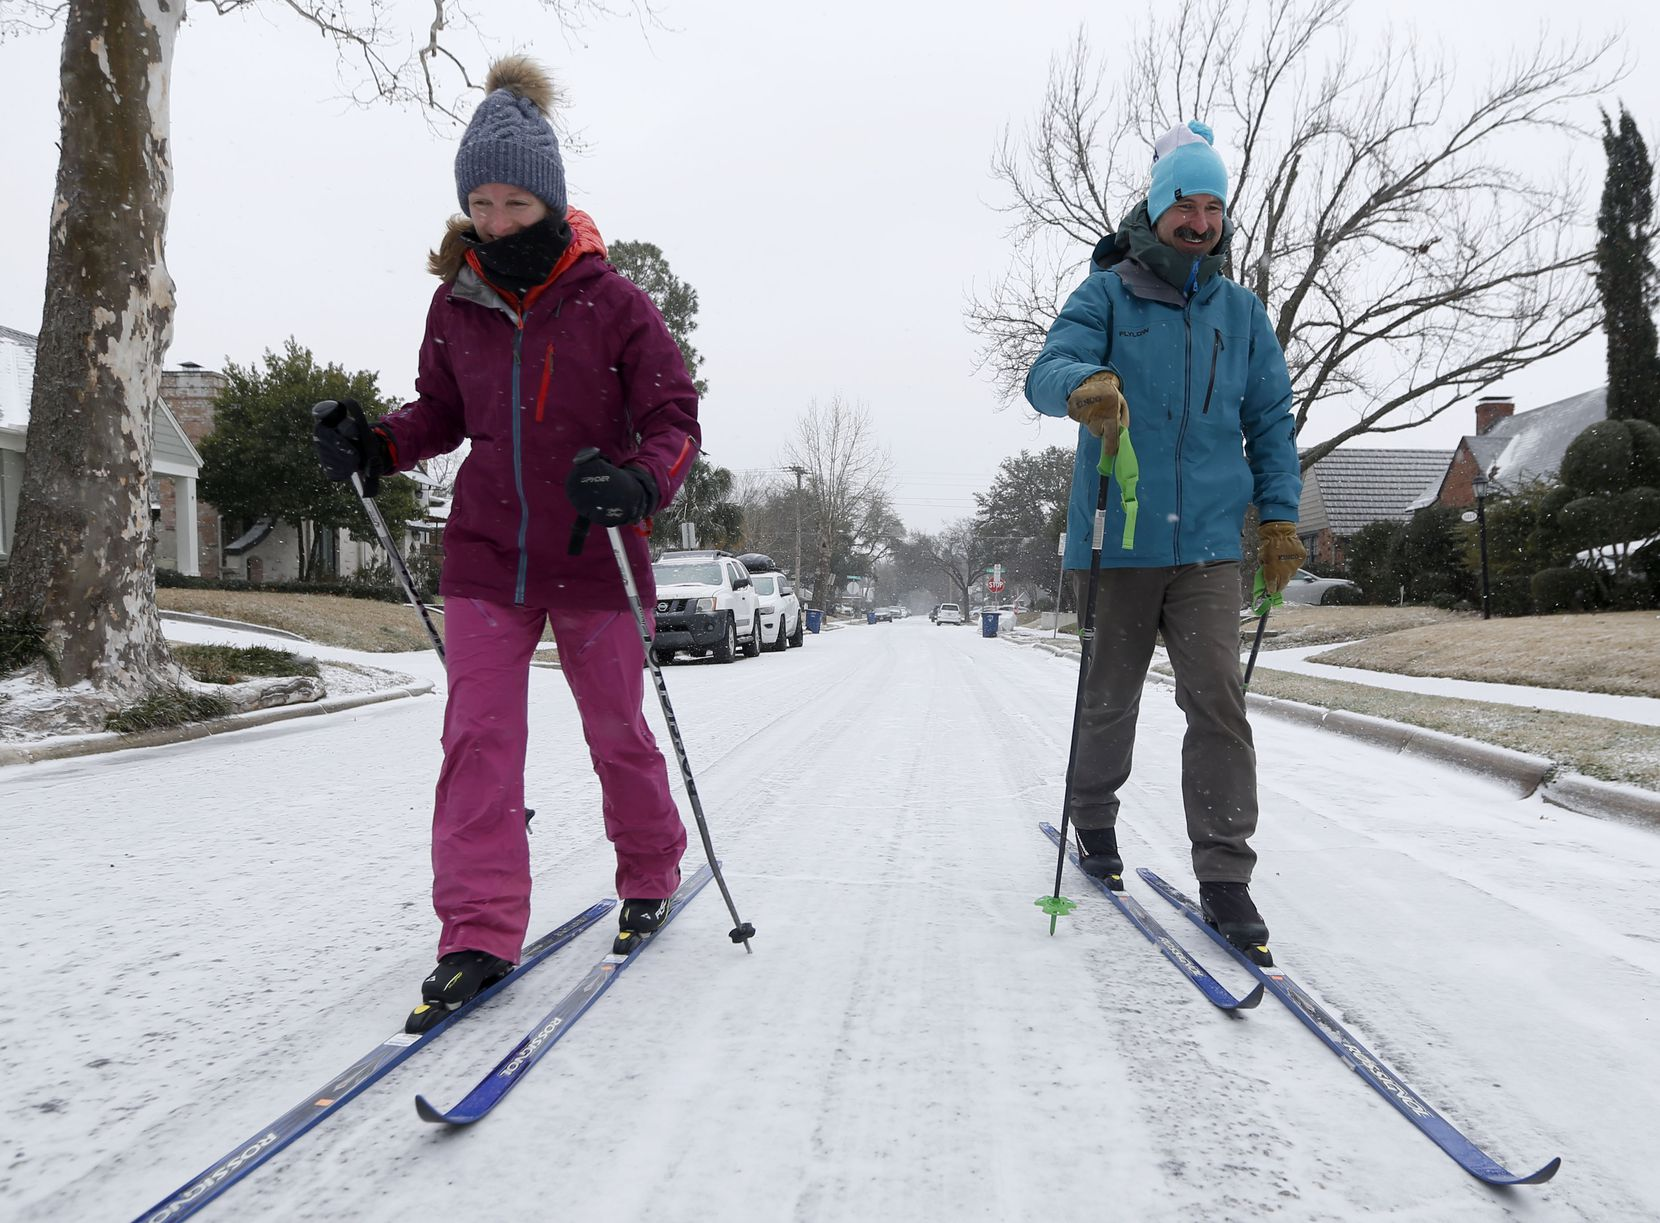 With the afternoon temperature hovering around 18 degrees F, with a wind chill of 4, Caroline and Peter Clark, of East Dallas, embrace the snowy Valentines Day weather by cross country skiing together in their Cochran Heights neighborhood, Sunday, Feb. 14, 2021 in Dallas. As temperatures dropped to near-record lows Sunday, electricity operators warned that demand could overwhelm the state's power grid and force rotating power outages.